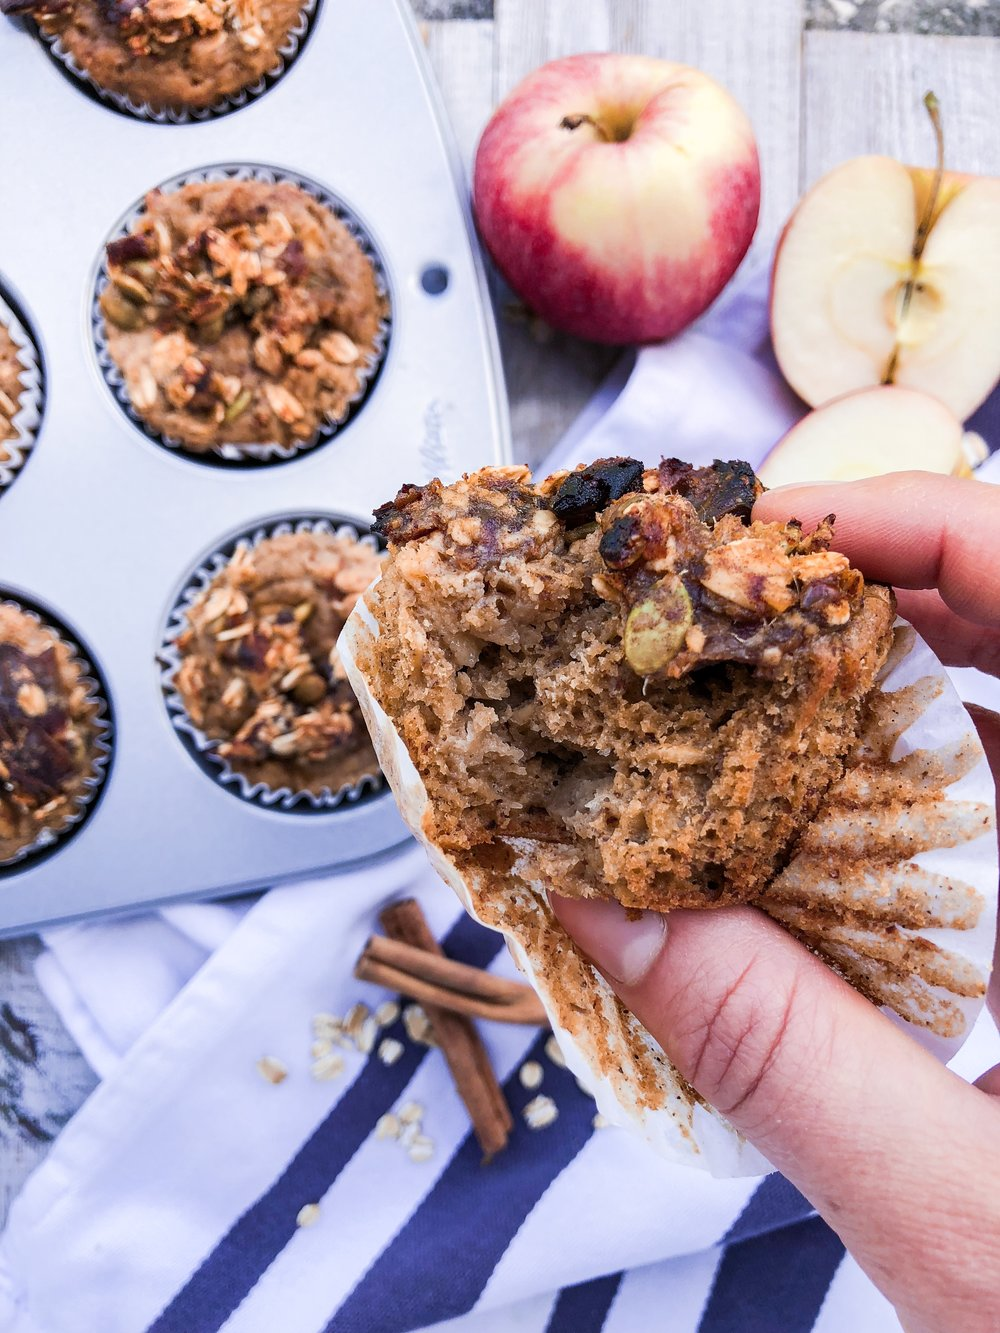 Warm, spicy, and flavorful! These muffins are a must for the fall.